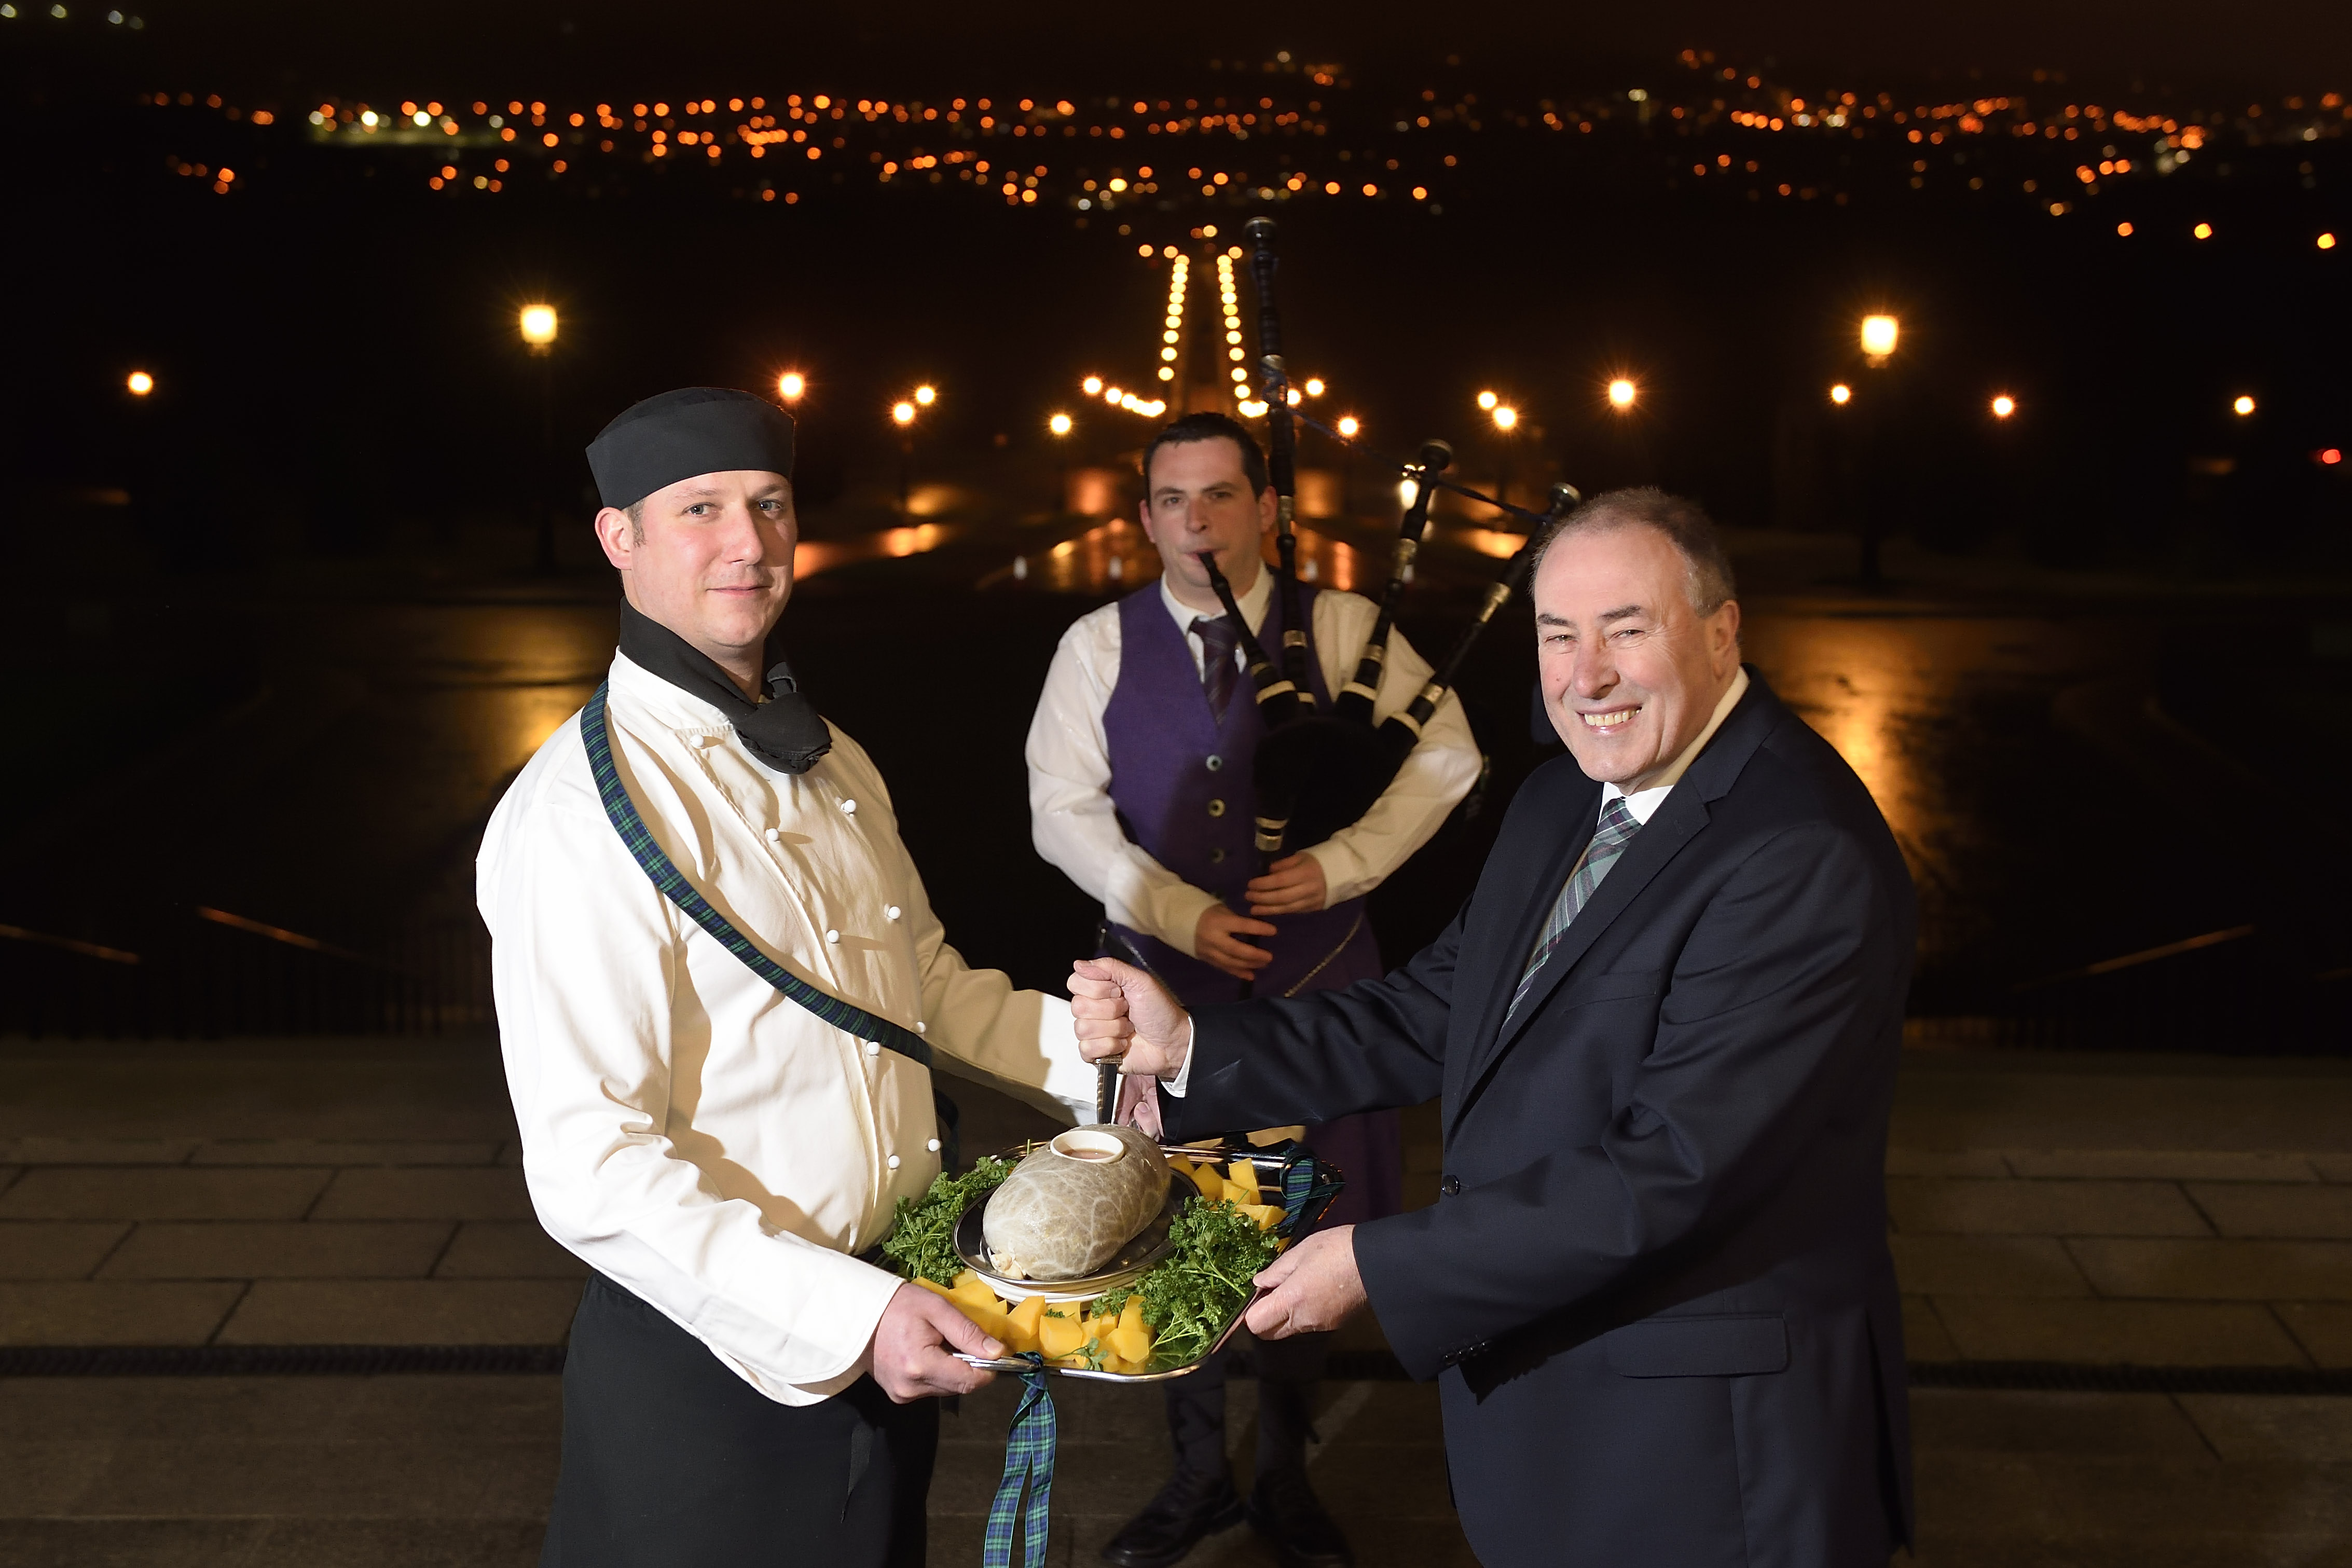 The Speaker of the Assembly, Mitchel McLaughlin MLA, pictured with Piper Darren Milligan and chef, Ashley McMahon presenting the haggis, at the first official Burns Night celebration in Parliament Buildings. The celebration of Scotland's national poet, Robert Burns, took place in the Great Hall. Picture: Michael Cooper